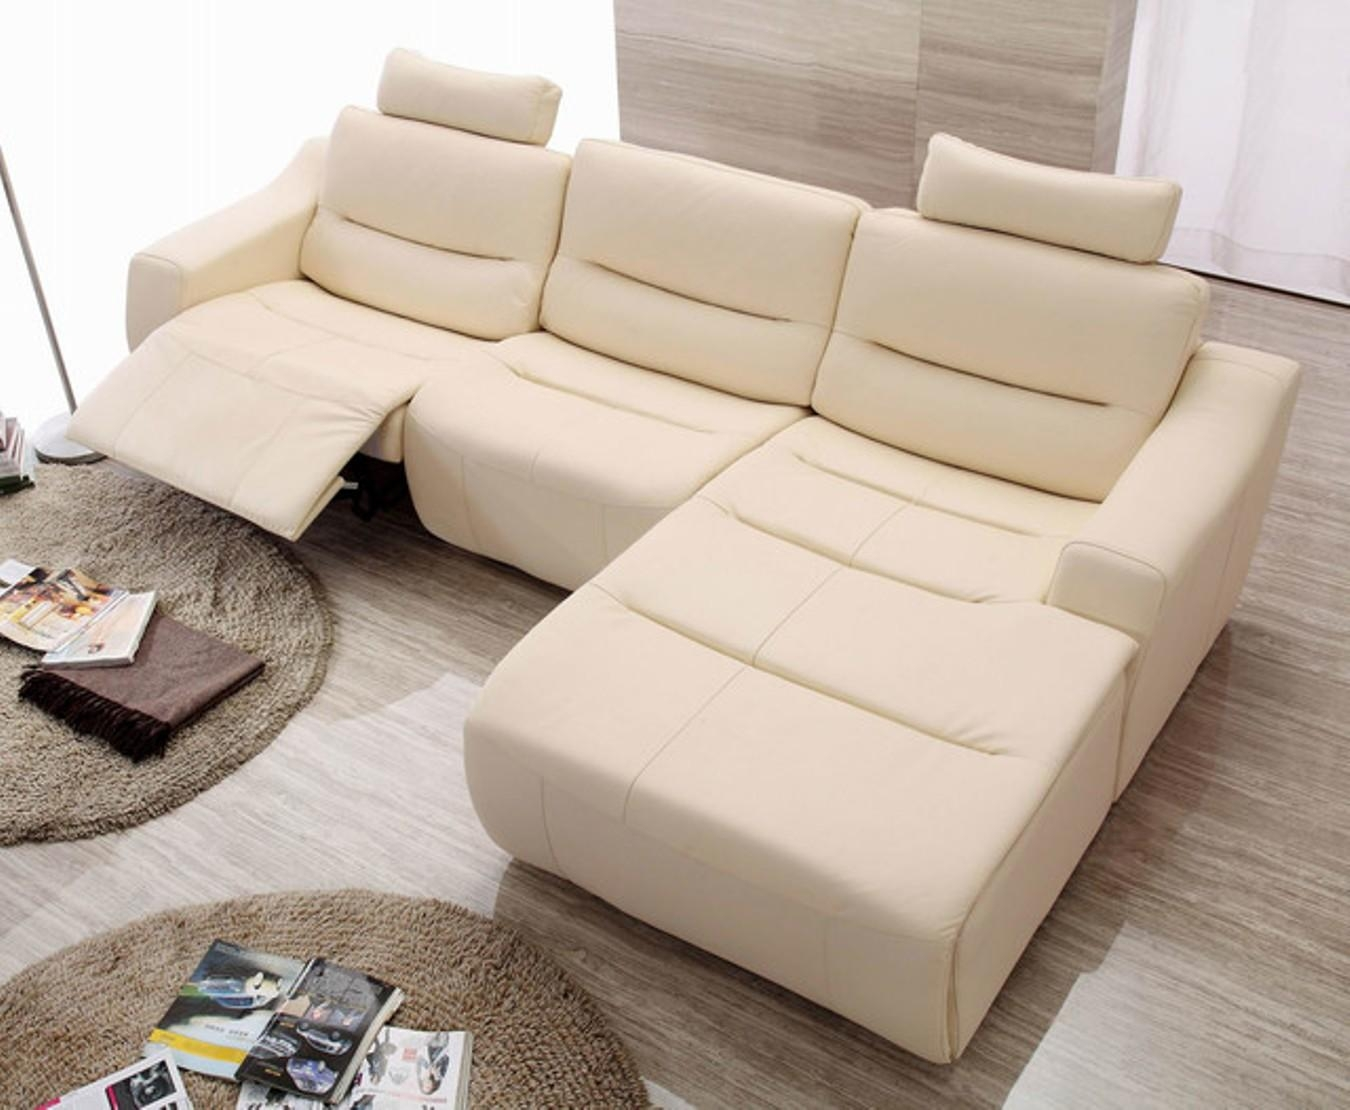 20 Choices Of Small Scale Sectional Sofas Sofa Ideas